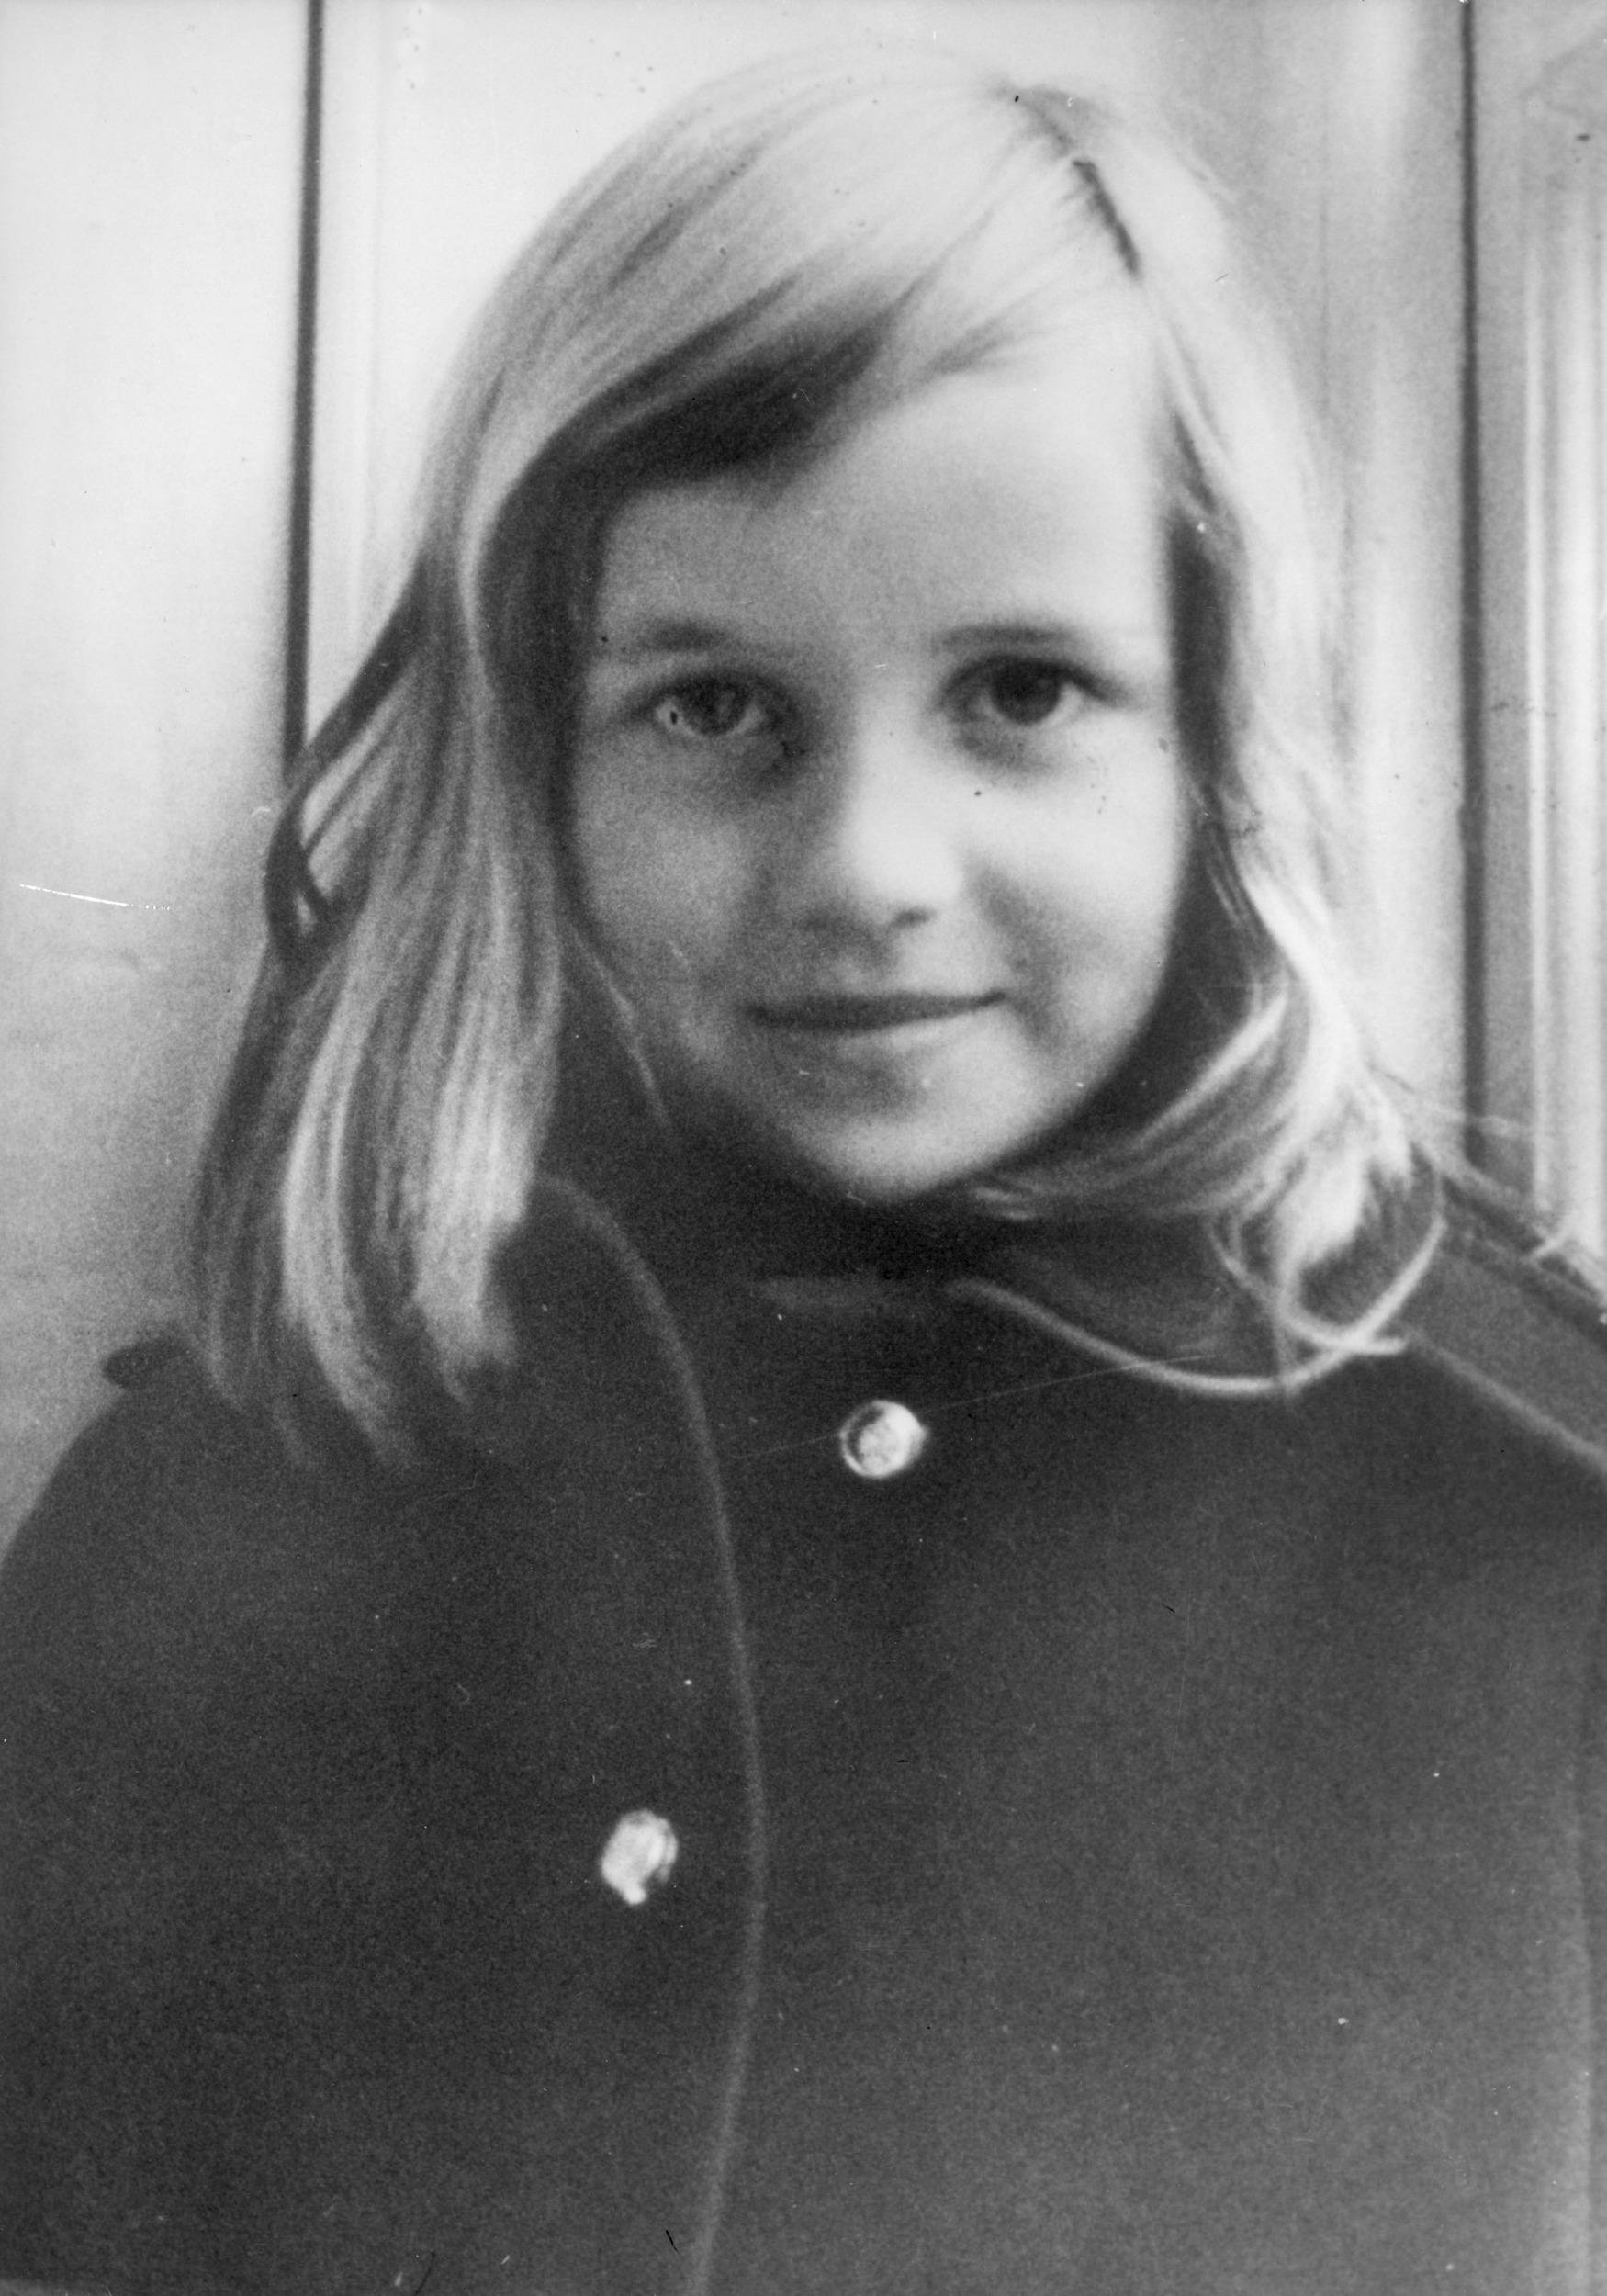 circa 1965: A young Lady Diana Spencer (1961 - 1997), later the wife of Prince Charles.